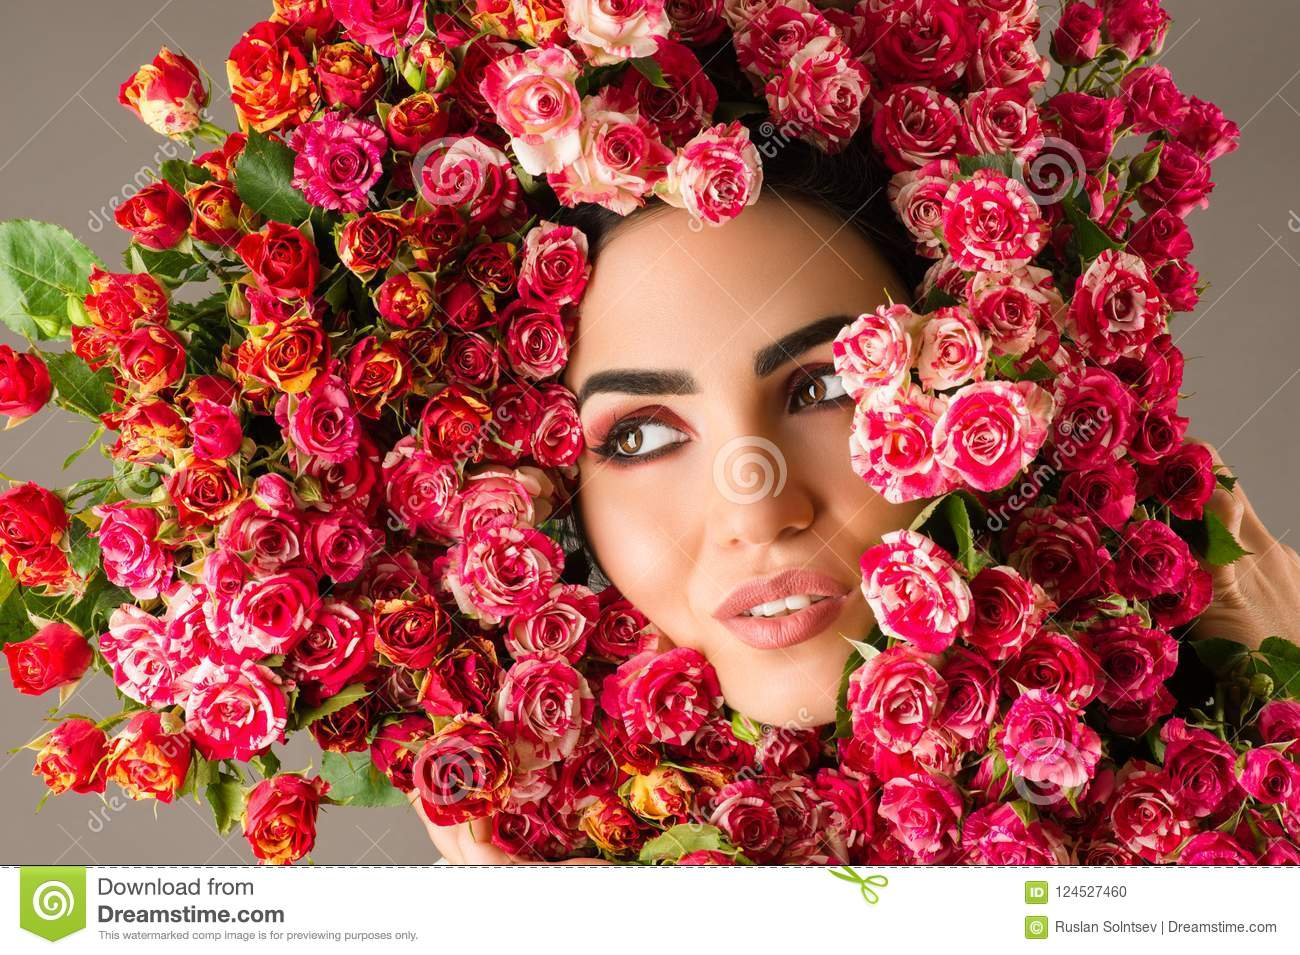 Beauty woman makeup face with red roses flower wreath on head